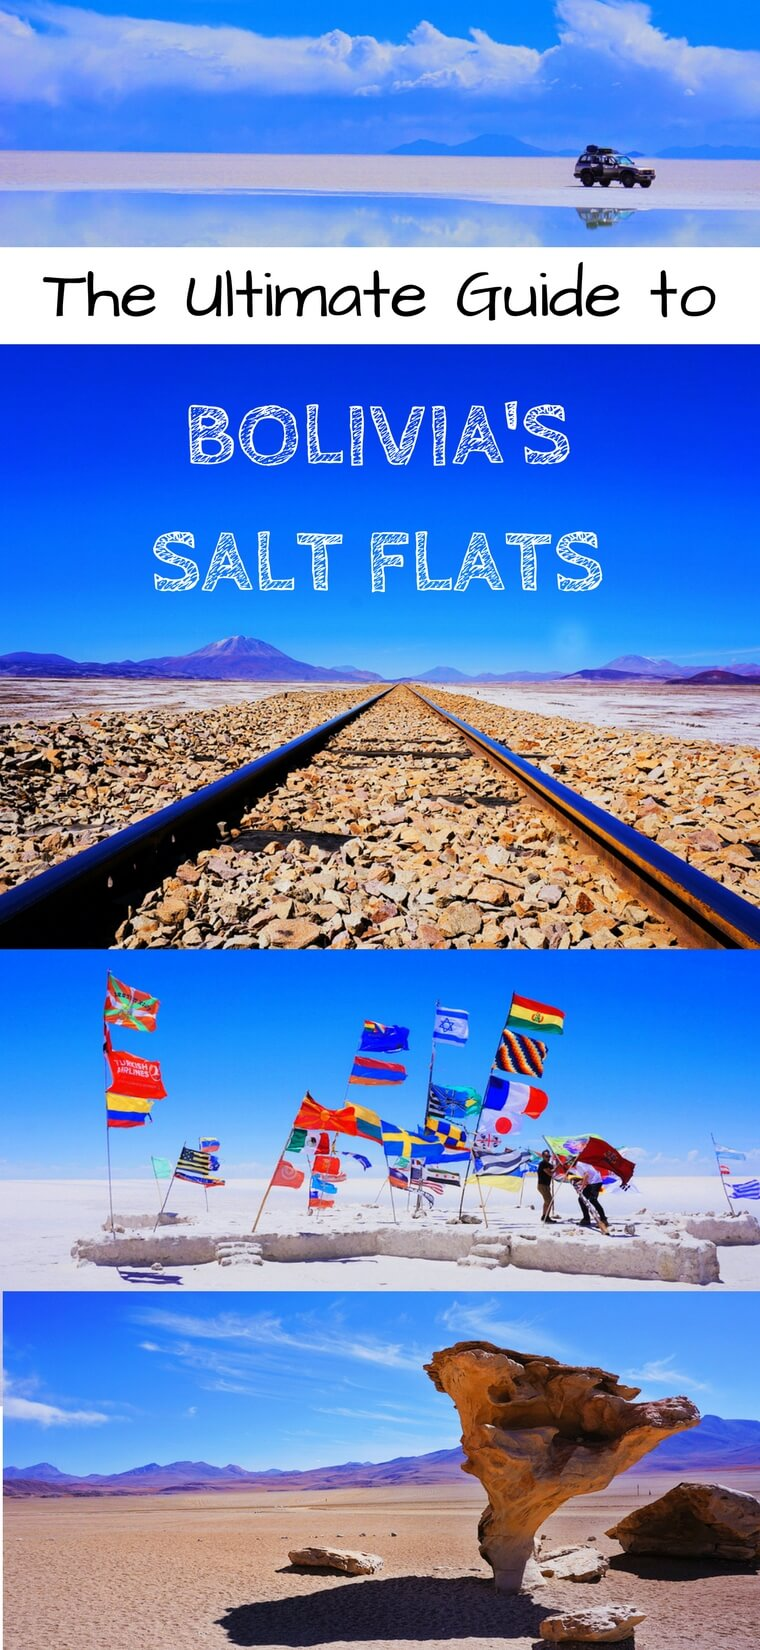 Add the salt flats of Bolivia to your travel bucket list immediately. In this complete guide, we cover everything you need to know to have a trip of a lifetime through the Salar de Uyuni in beautiful Bolivia. #travel #bolivia #bucketlist